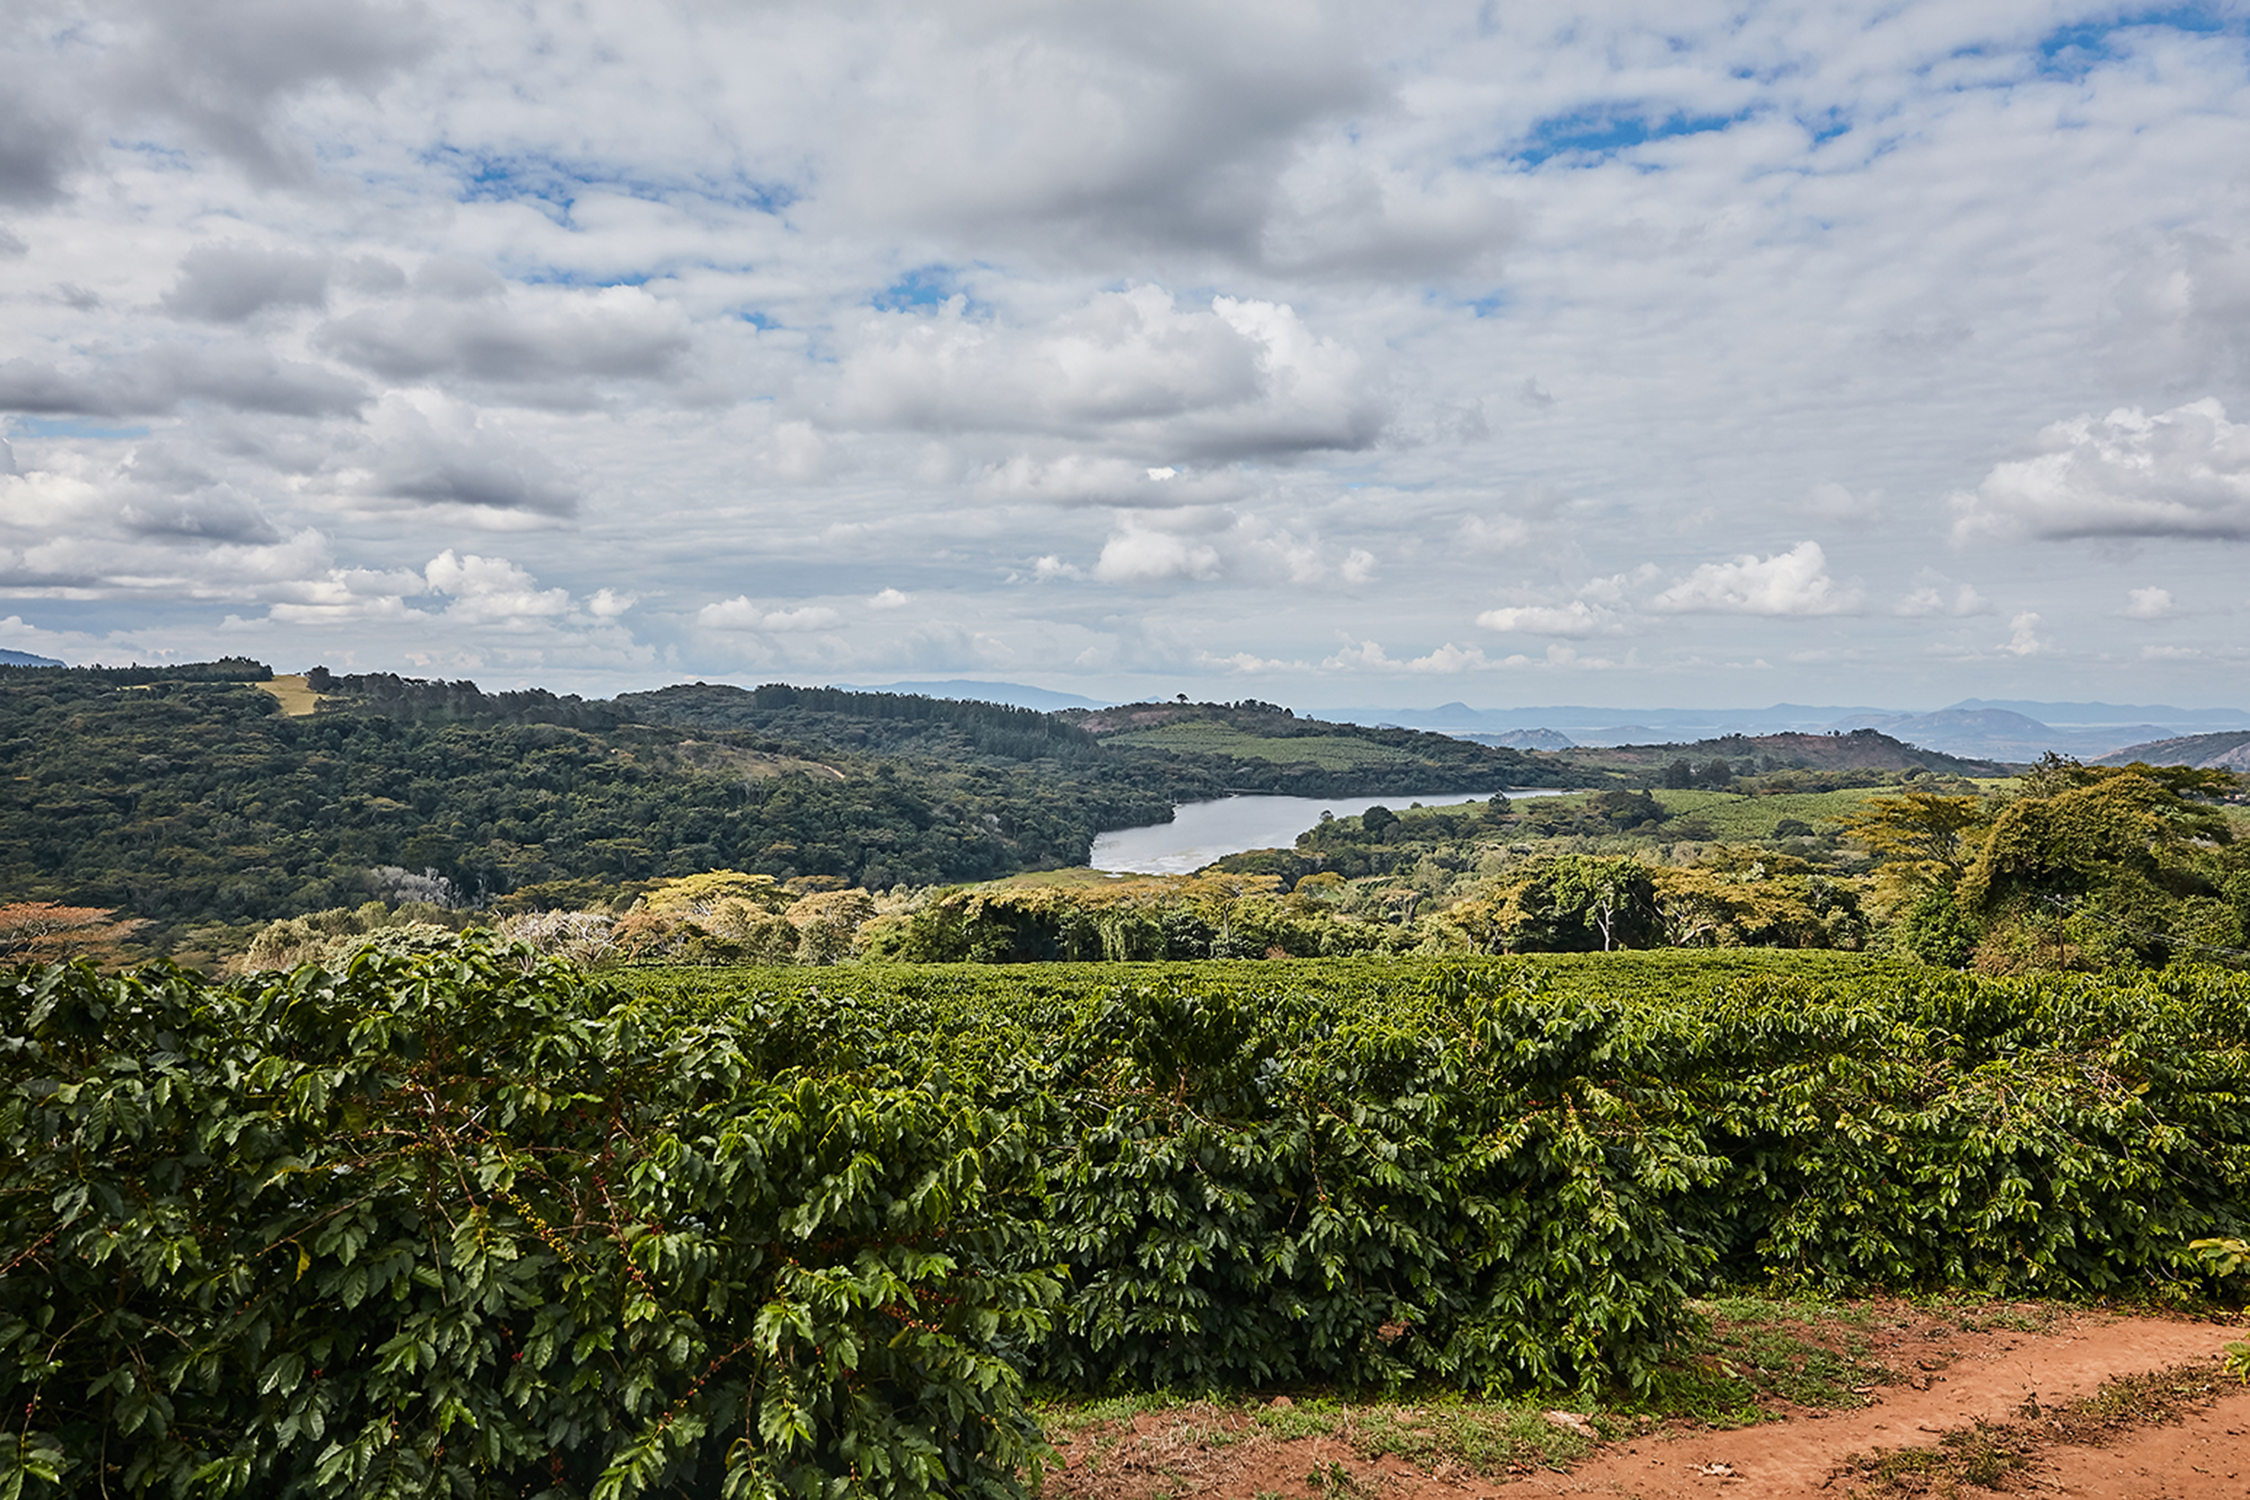 A coffee farm in the Honde Valley, eastern Zimbabwe